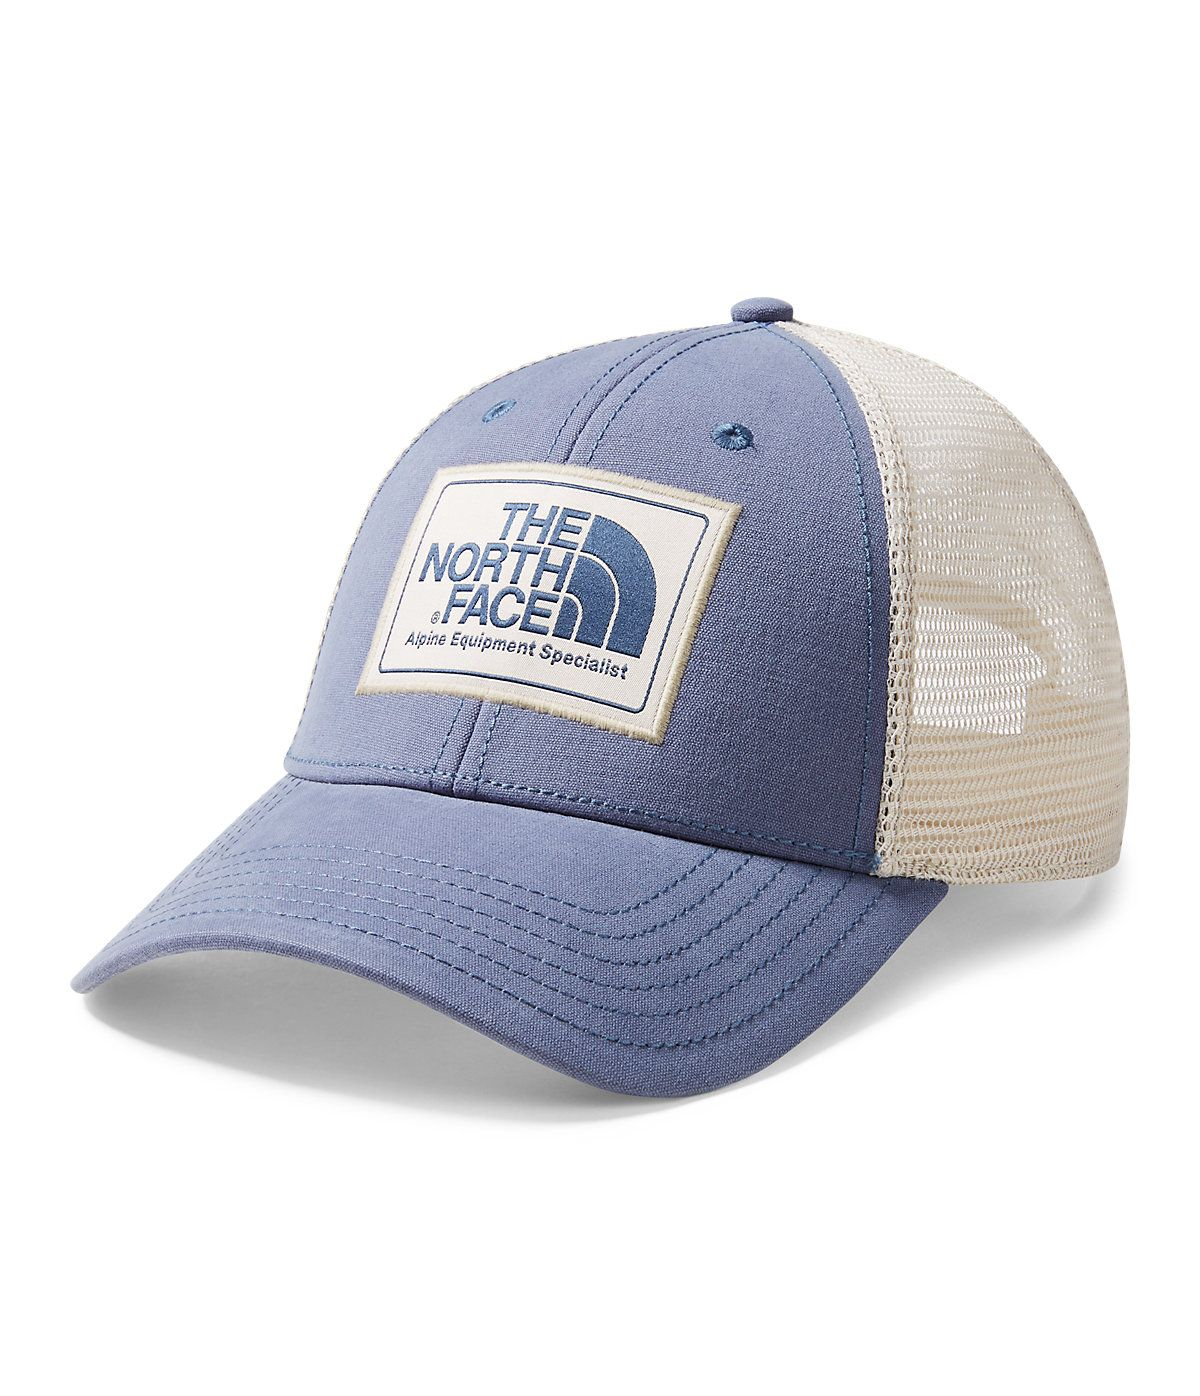 a98389524 Mudder trucker in 2019 | Products | Hats, North face women, Hats for ...